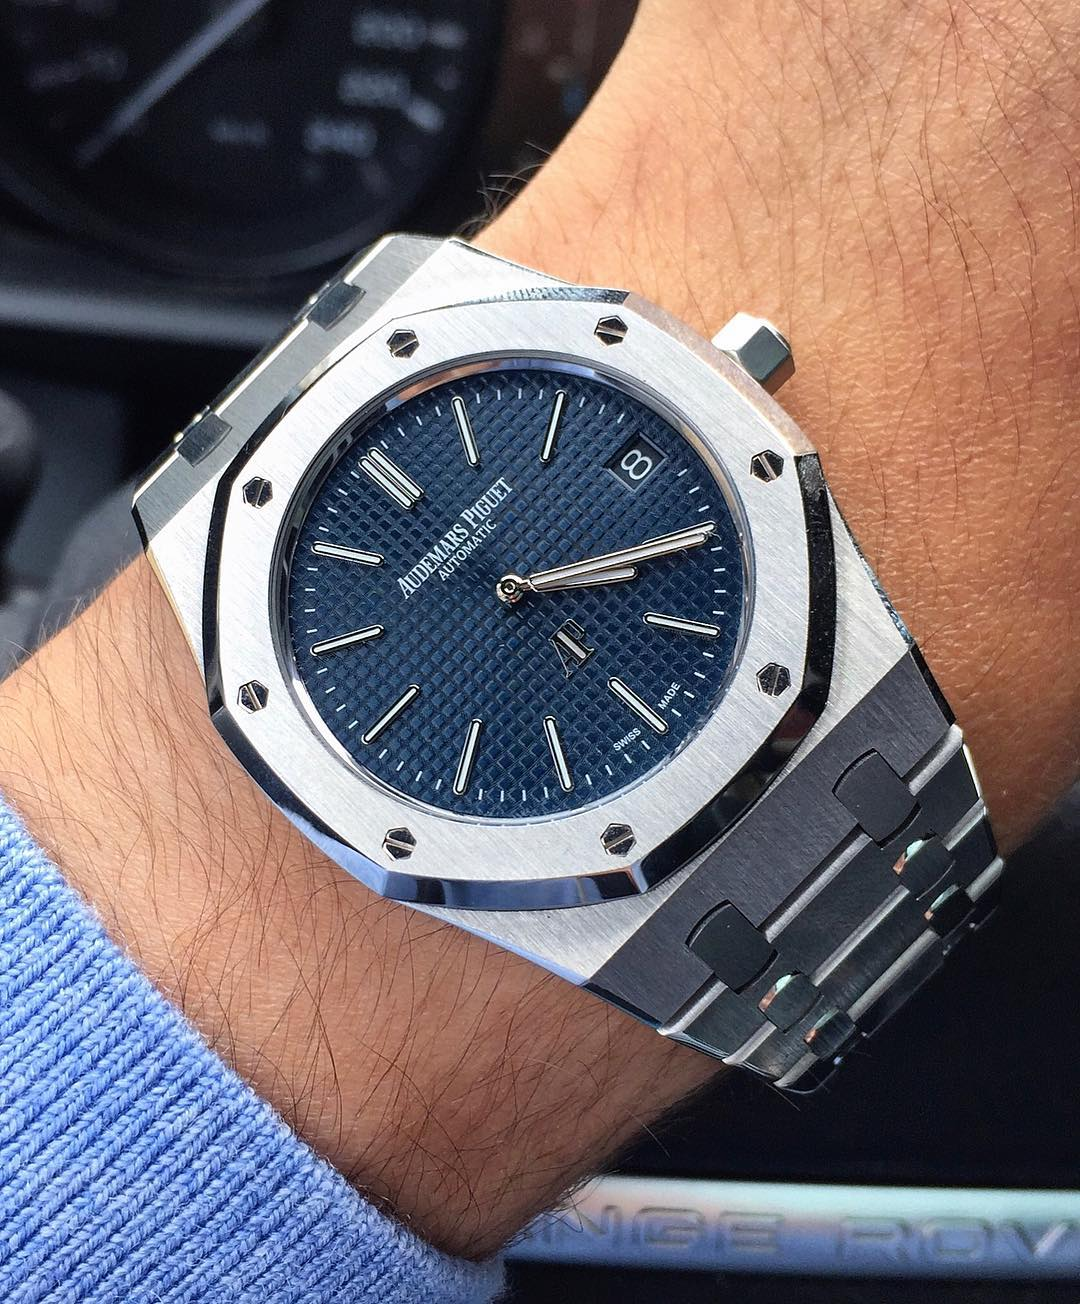 13 Audemars Piguet Royal Oak 15202ST by IG @watchrookiee - Image 1